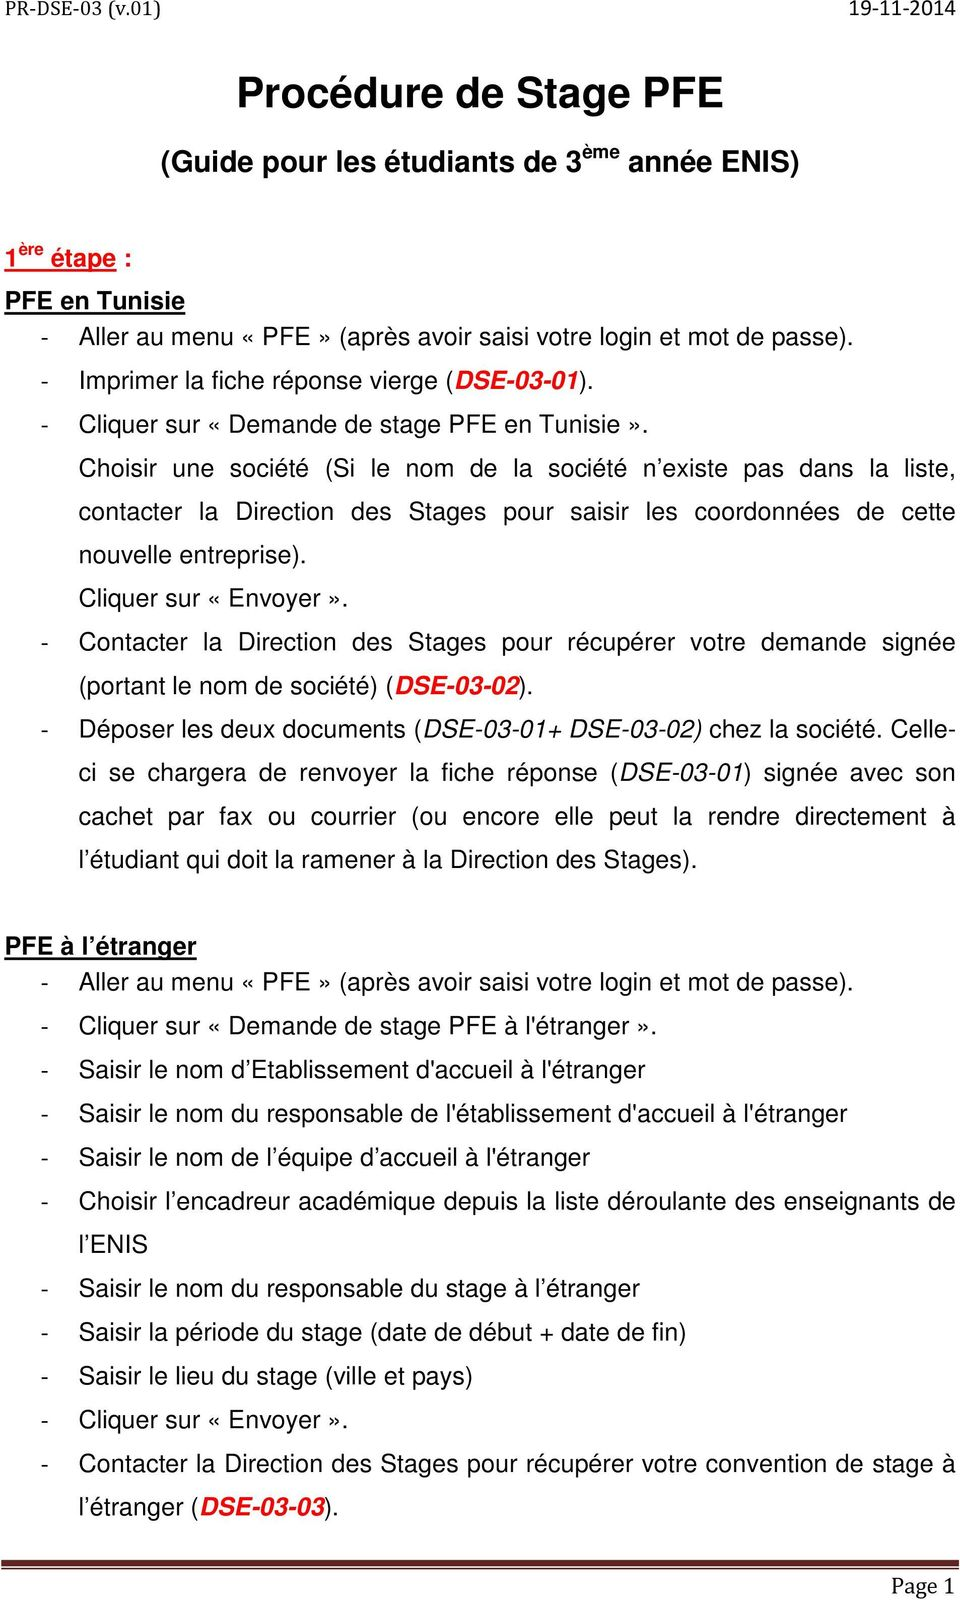 Procédure De Stage Pfe Pdf Free Download